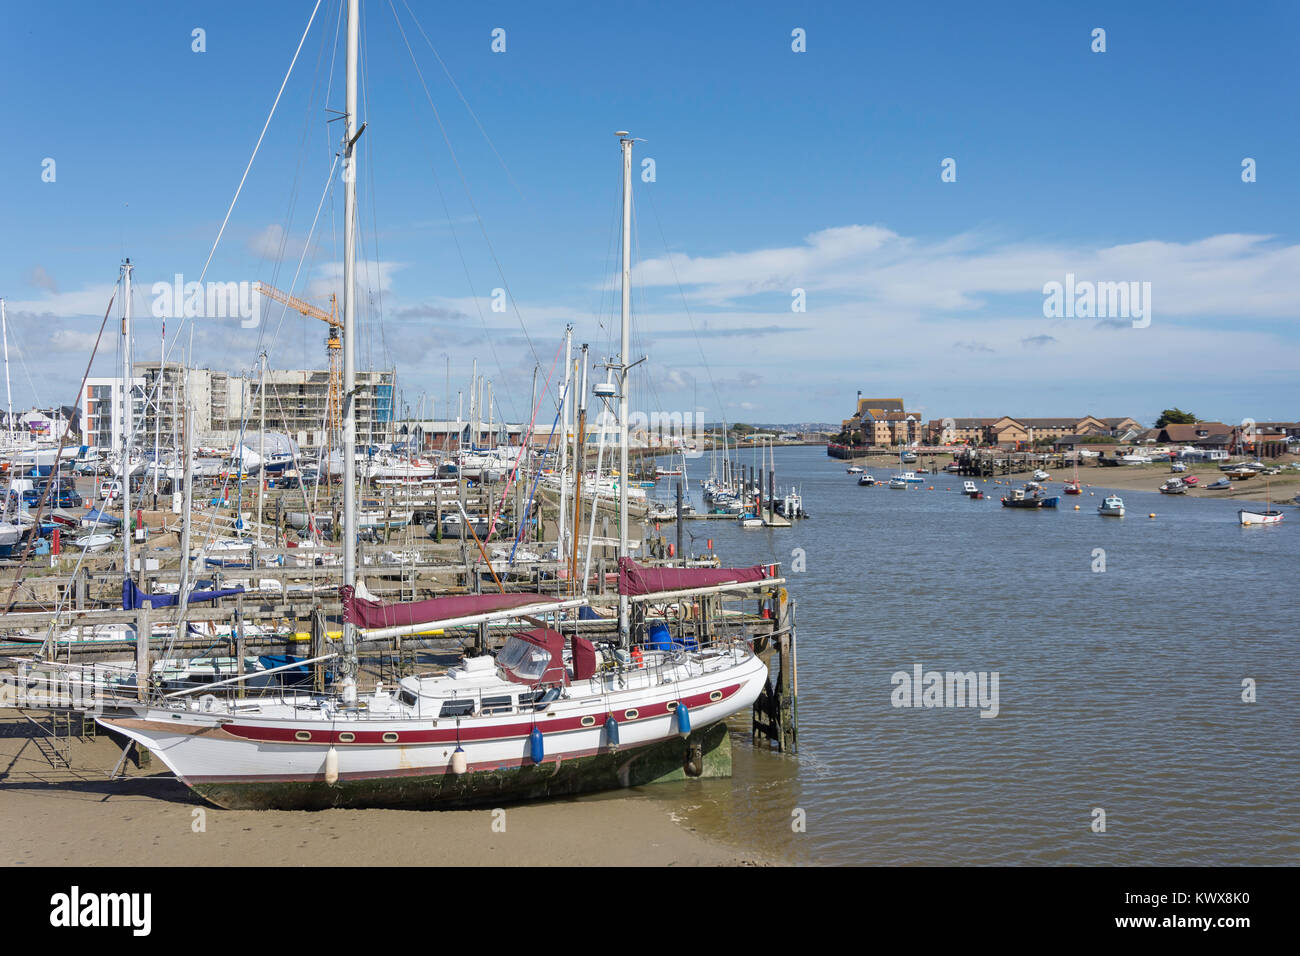 Boats moored on River Adur, Shoreham-by-Sea, West Sussex, England, United Kingdom Stock Photo